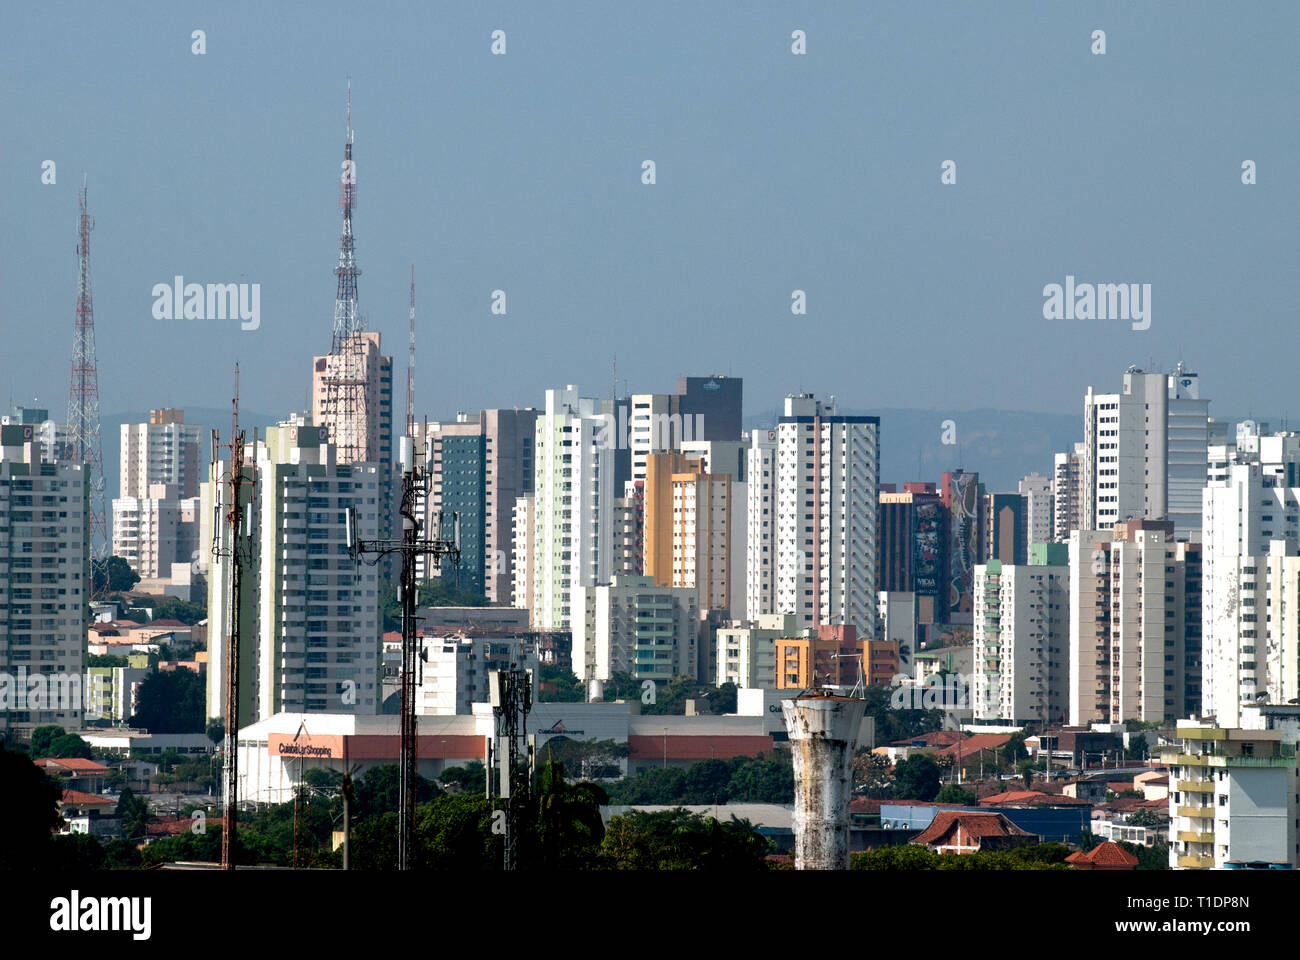 Skyline of the city of Cuiaba, capital of the Brazilian state of Mato Grosso Stock Photo